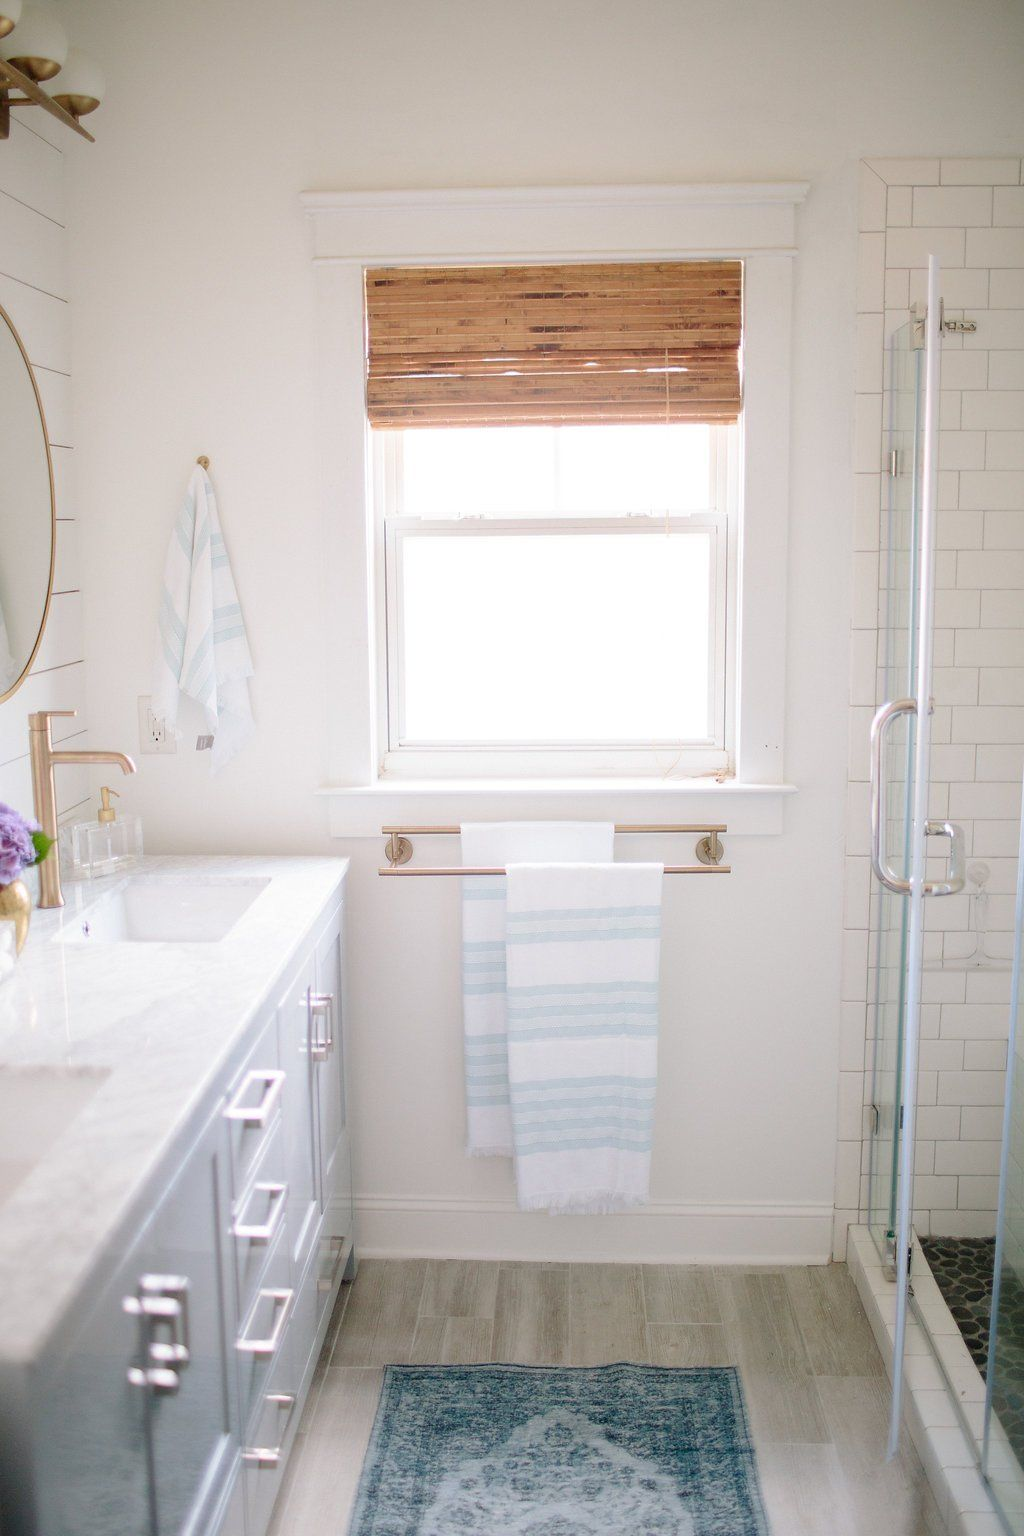 Our Master Bathroom Renovation Reveal | Master bathrooms, Budgeting ...